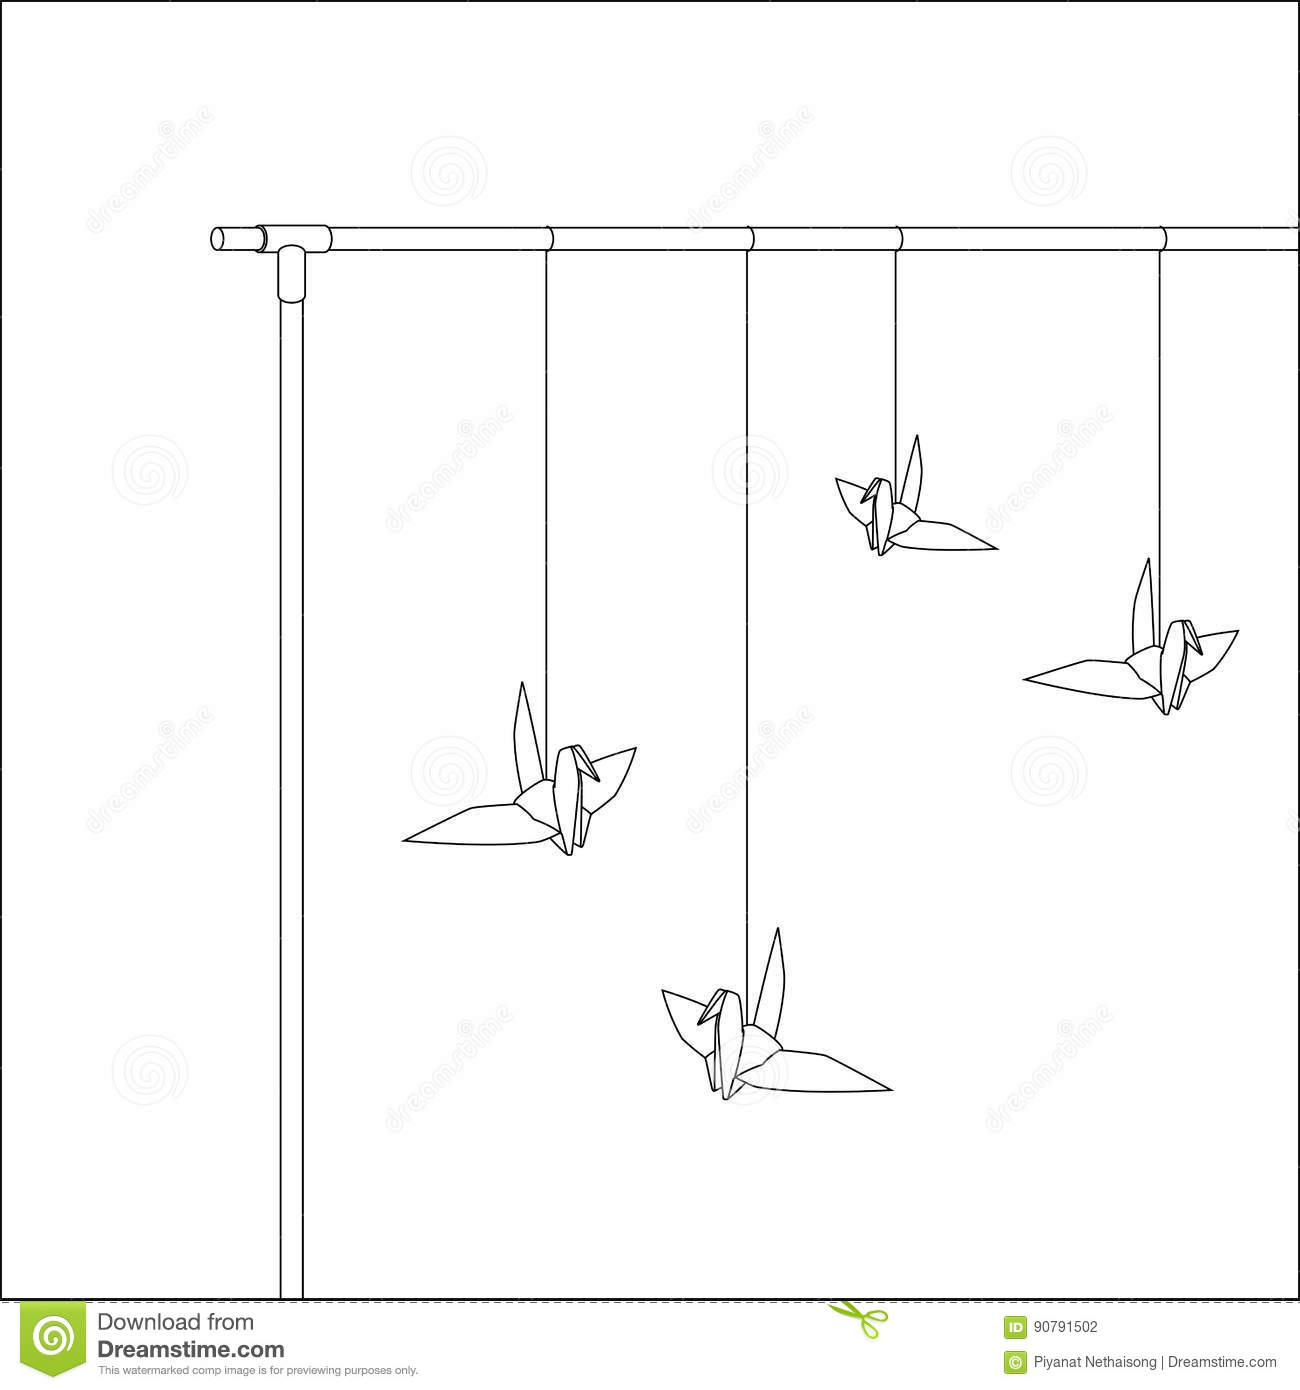 Newtons cartoons illustrations vector stock images for Balancing bird template